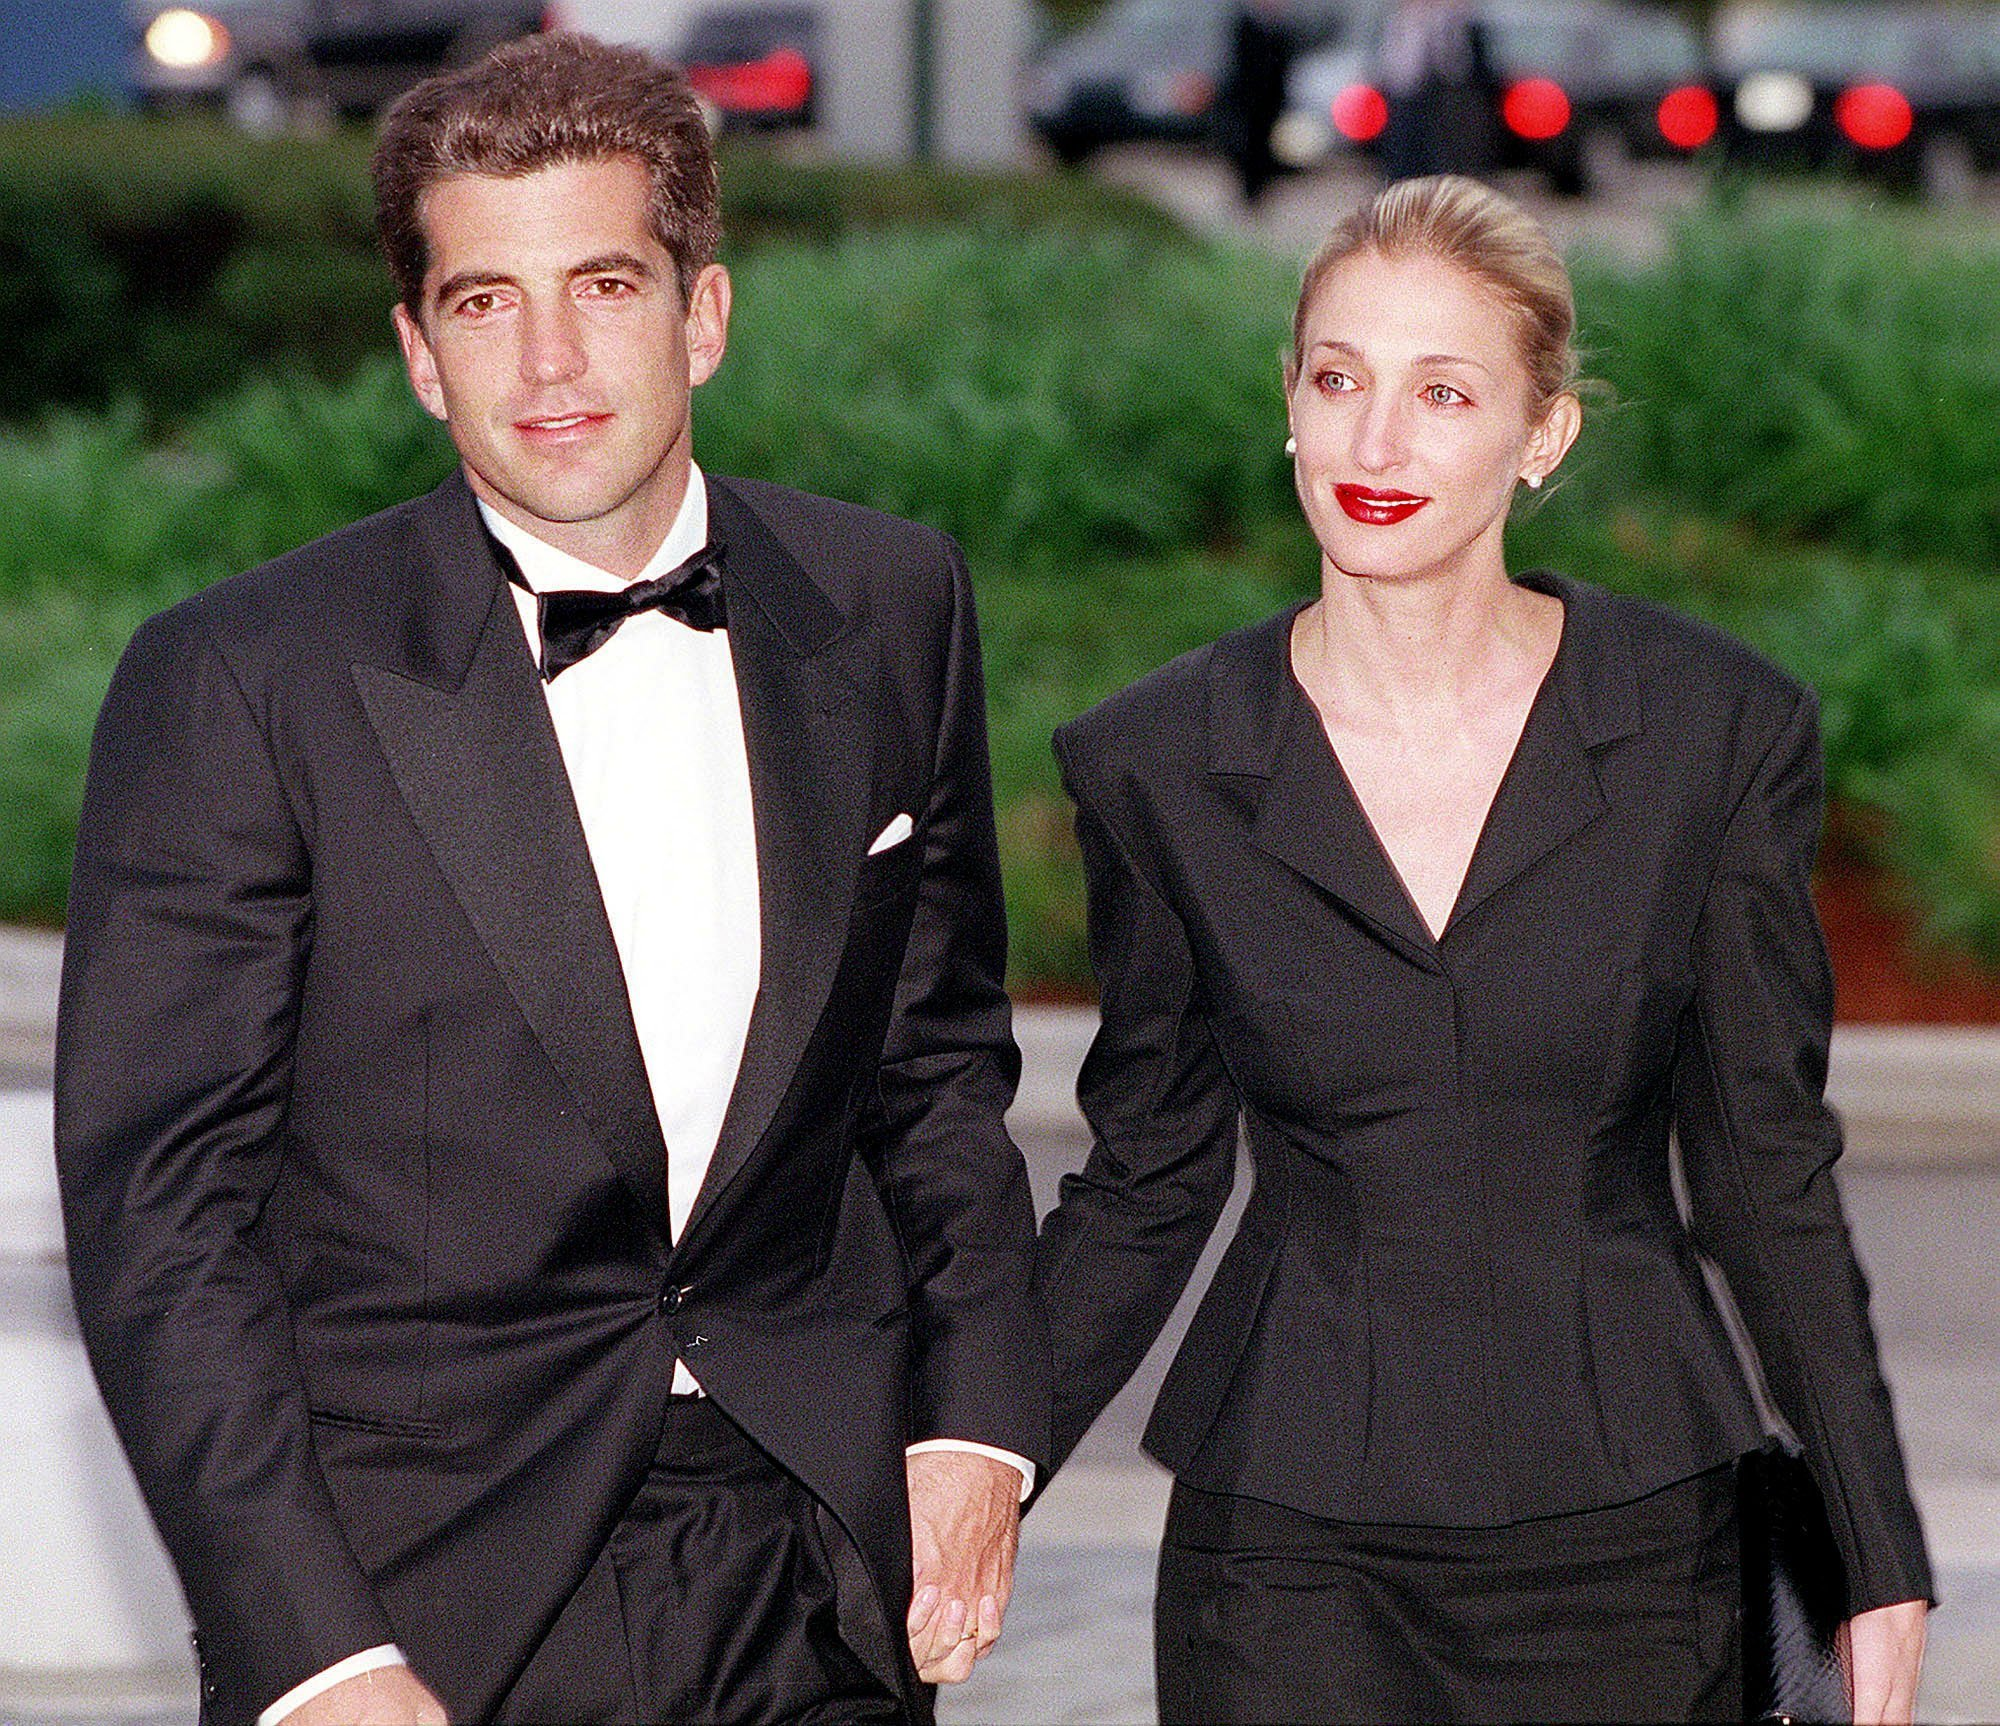 John F. Kennedy, Jr. and Carolyn Bessette Kennedy arrive at the annual John F. Kennedy Library Foundation dinner on May 23, 1999, at the Kennedy Library in Boston, MA.   Photo: Getty Images.